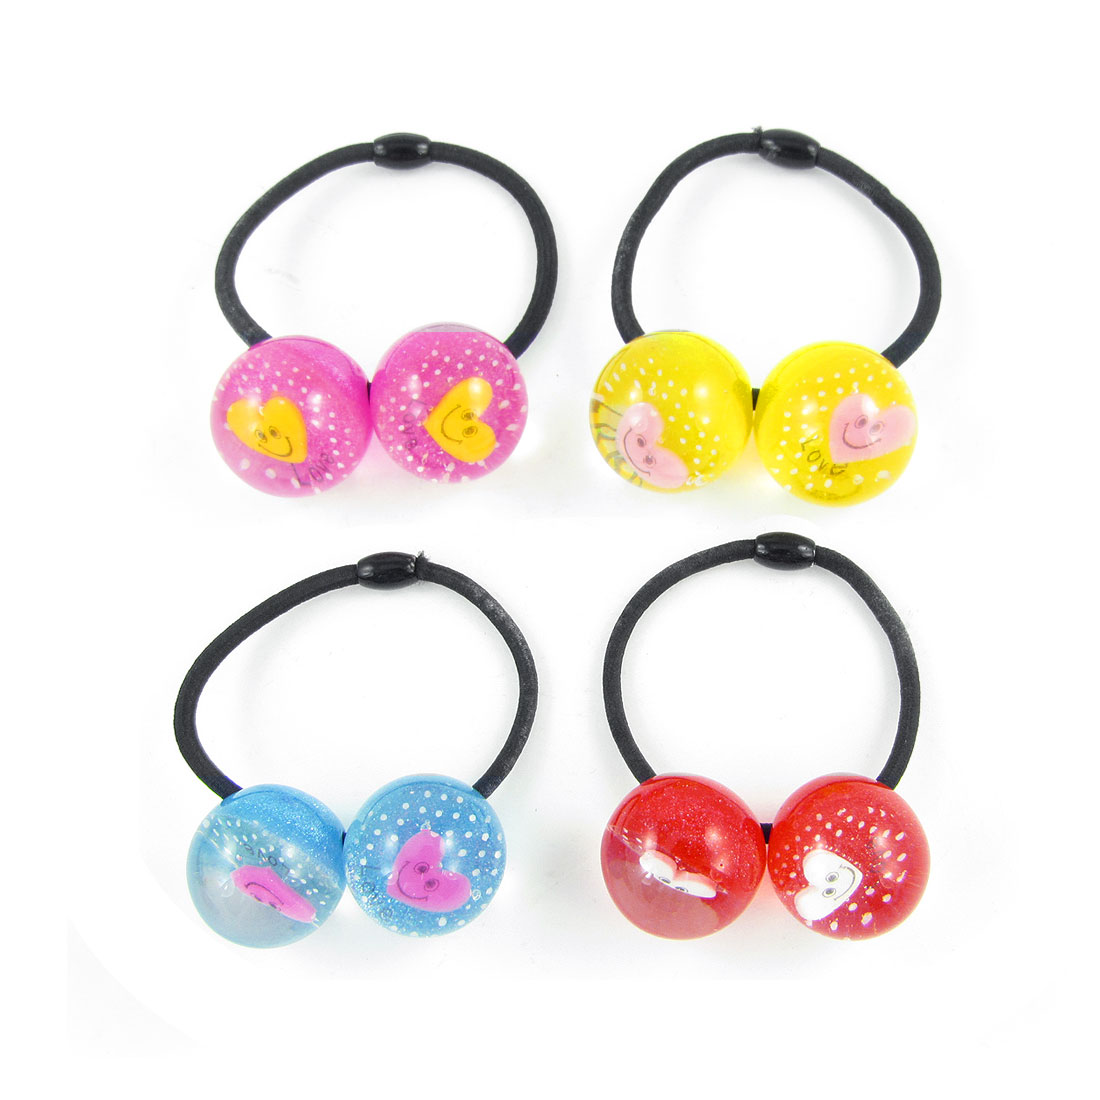 4pcs Girls Colored Heart Smile Face Inlaid Beads Decor Elastic Hair Band Tie